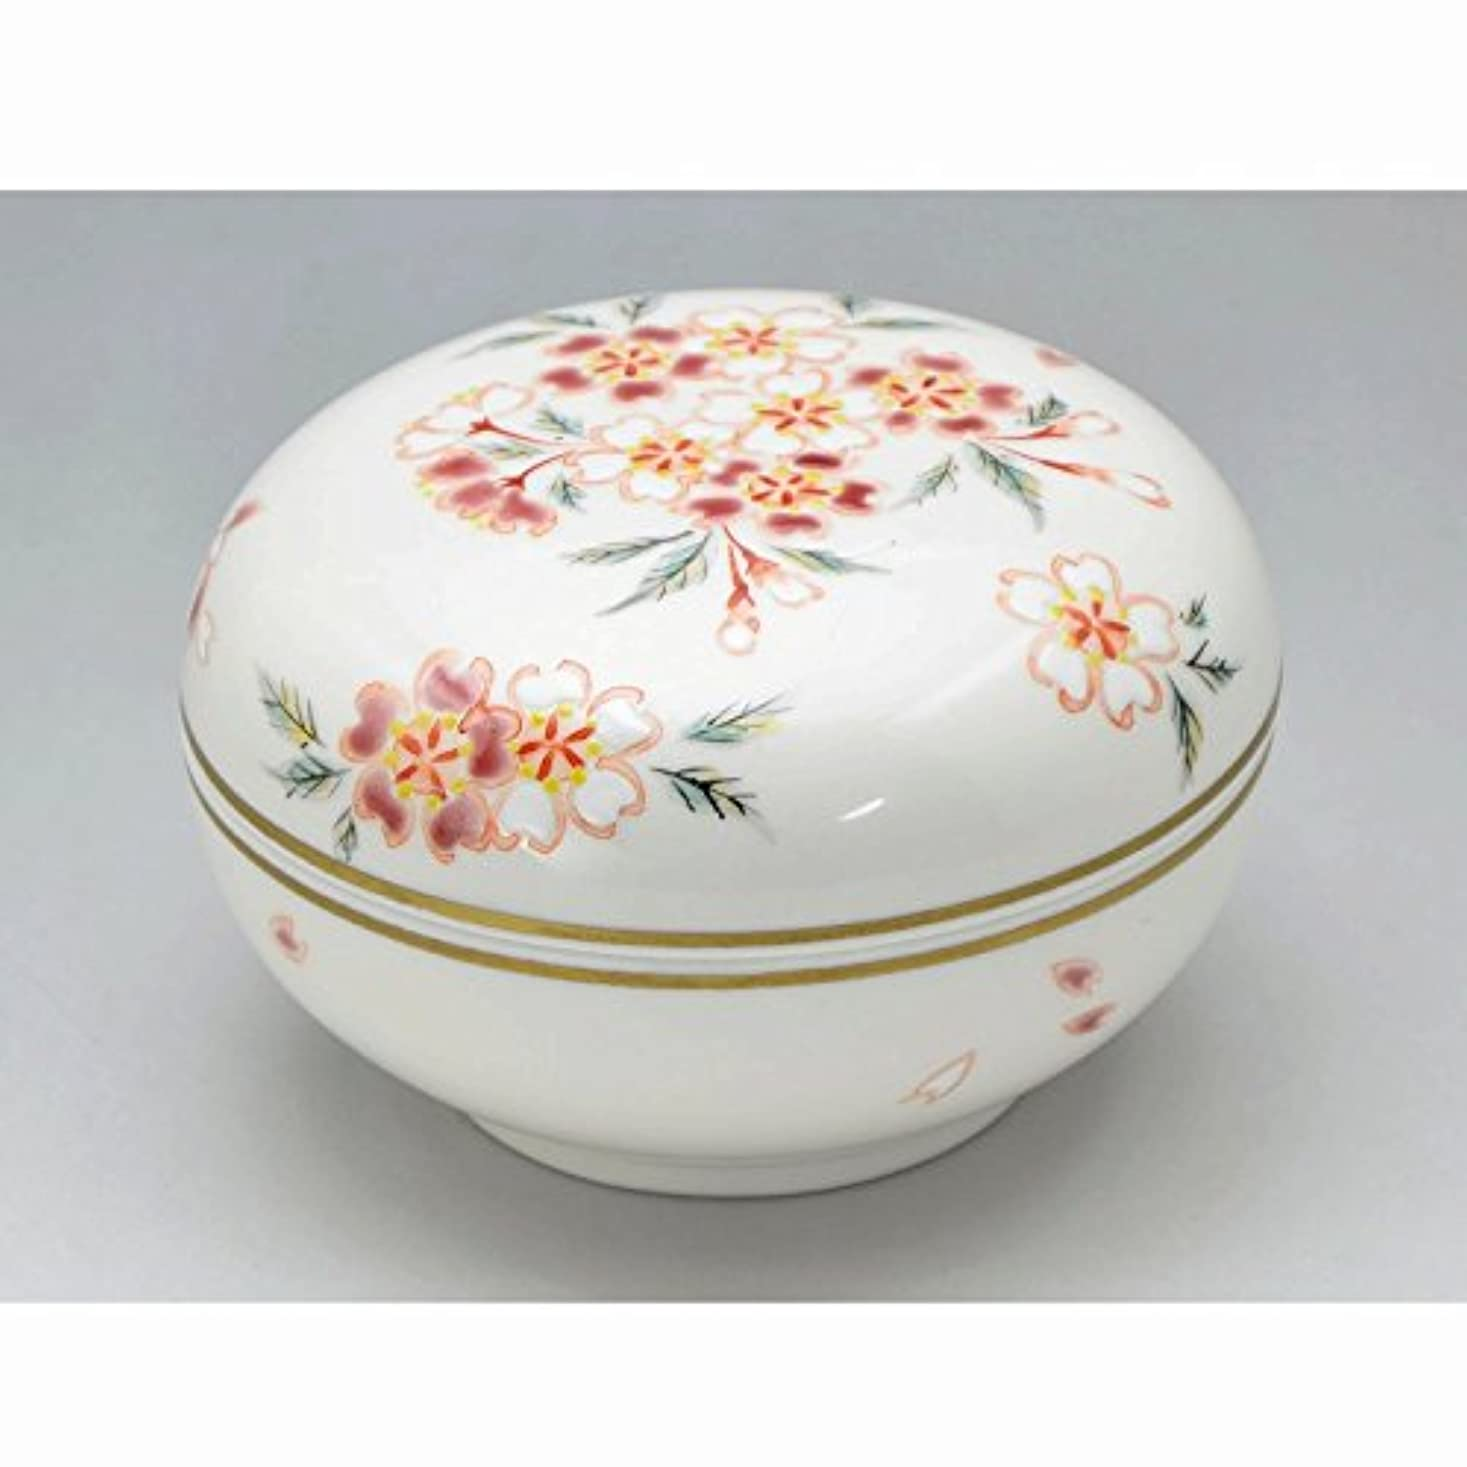 バンケット炭素剛性京焼?清水焼 磁器 香合 花桜 紙箱入 Kiyomizu-kyo yaki ware. Japanese porcelain kogo incense burner hanazakura with paper box.